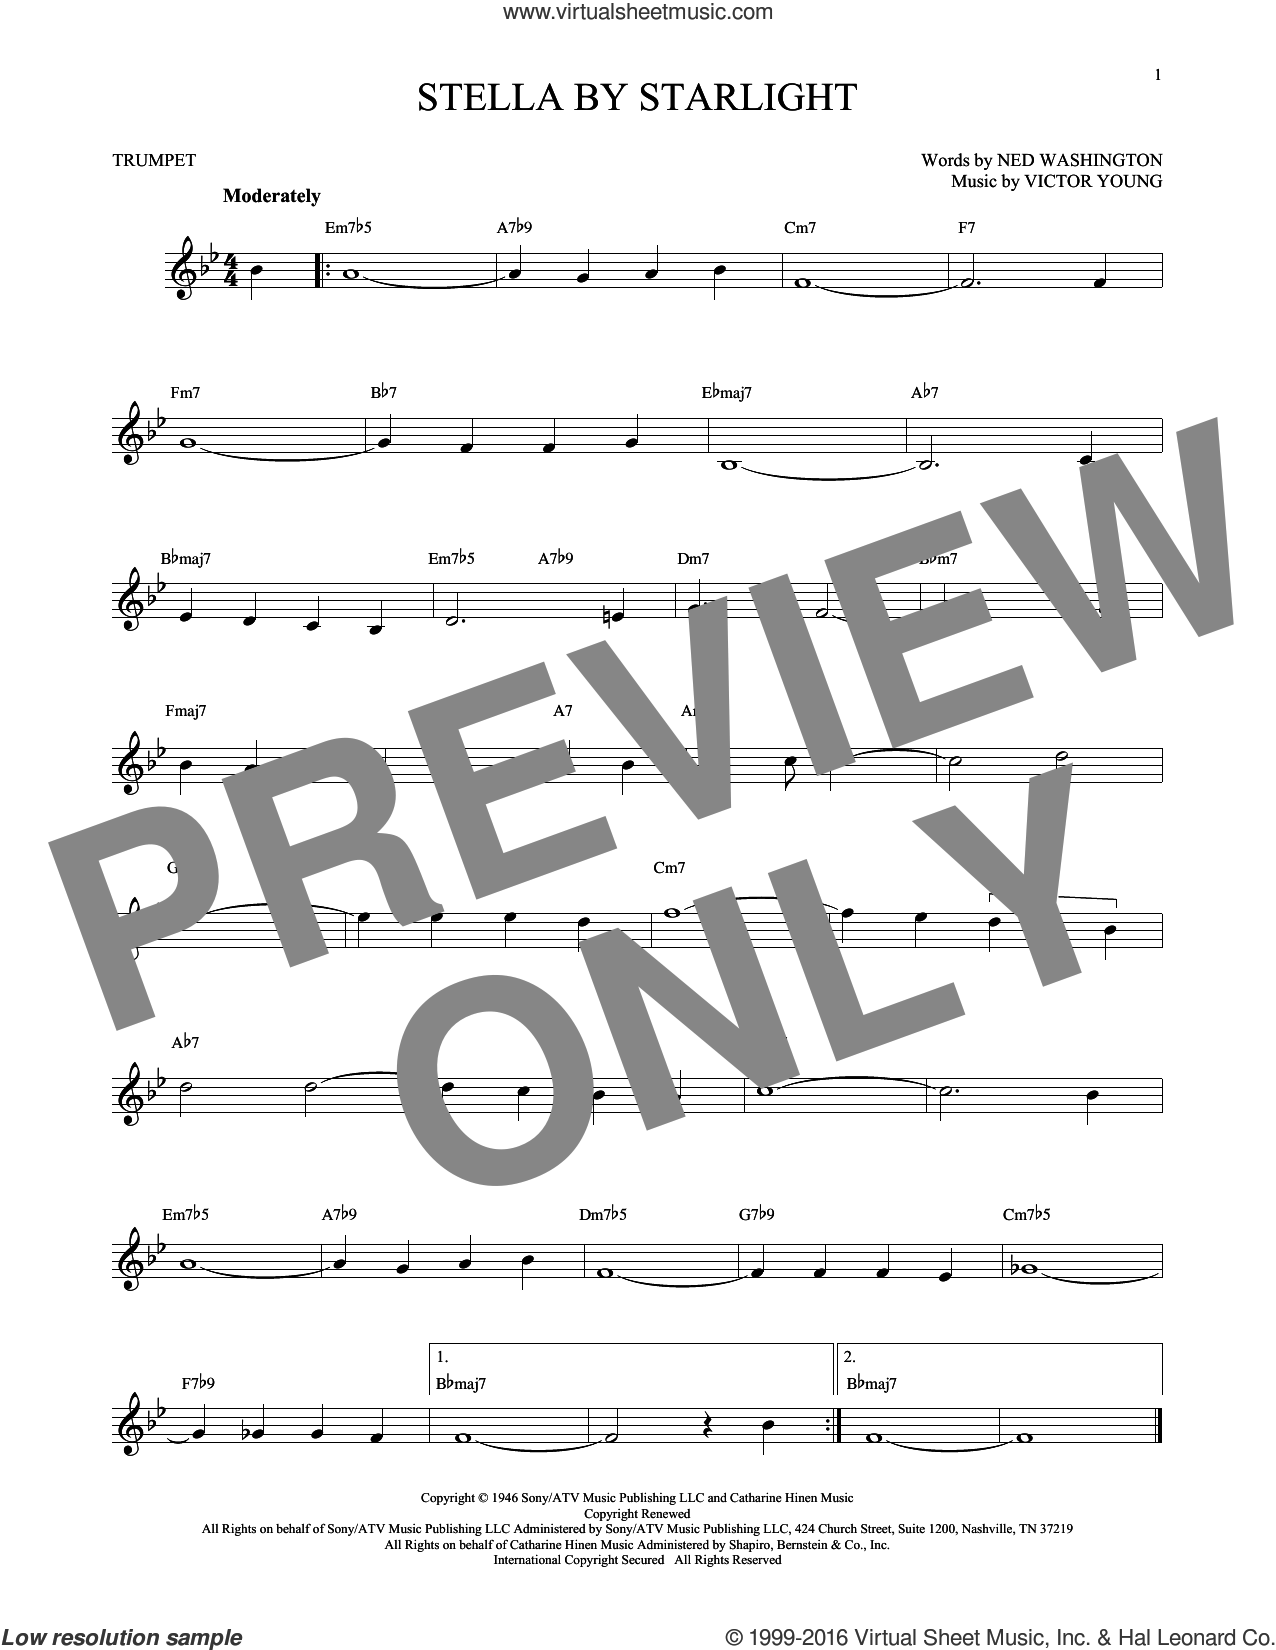 Stella By Starlight sheet music for trumpet solo by Ned Washington